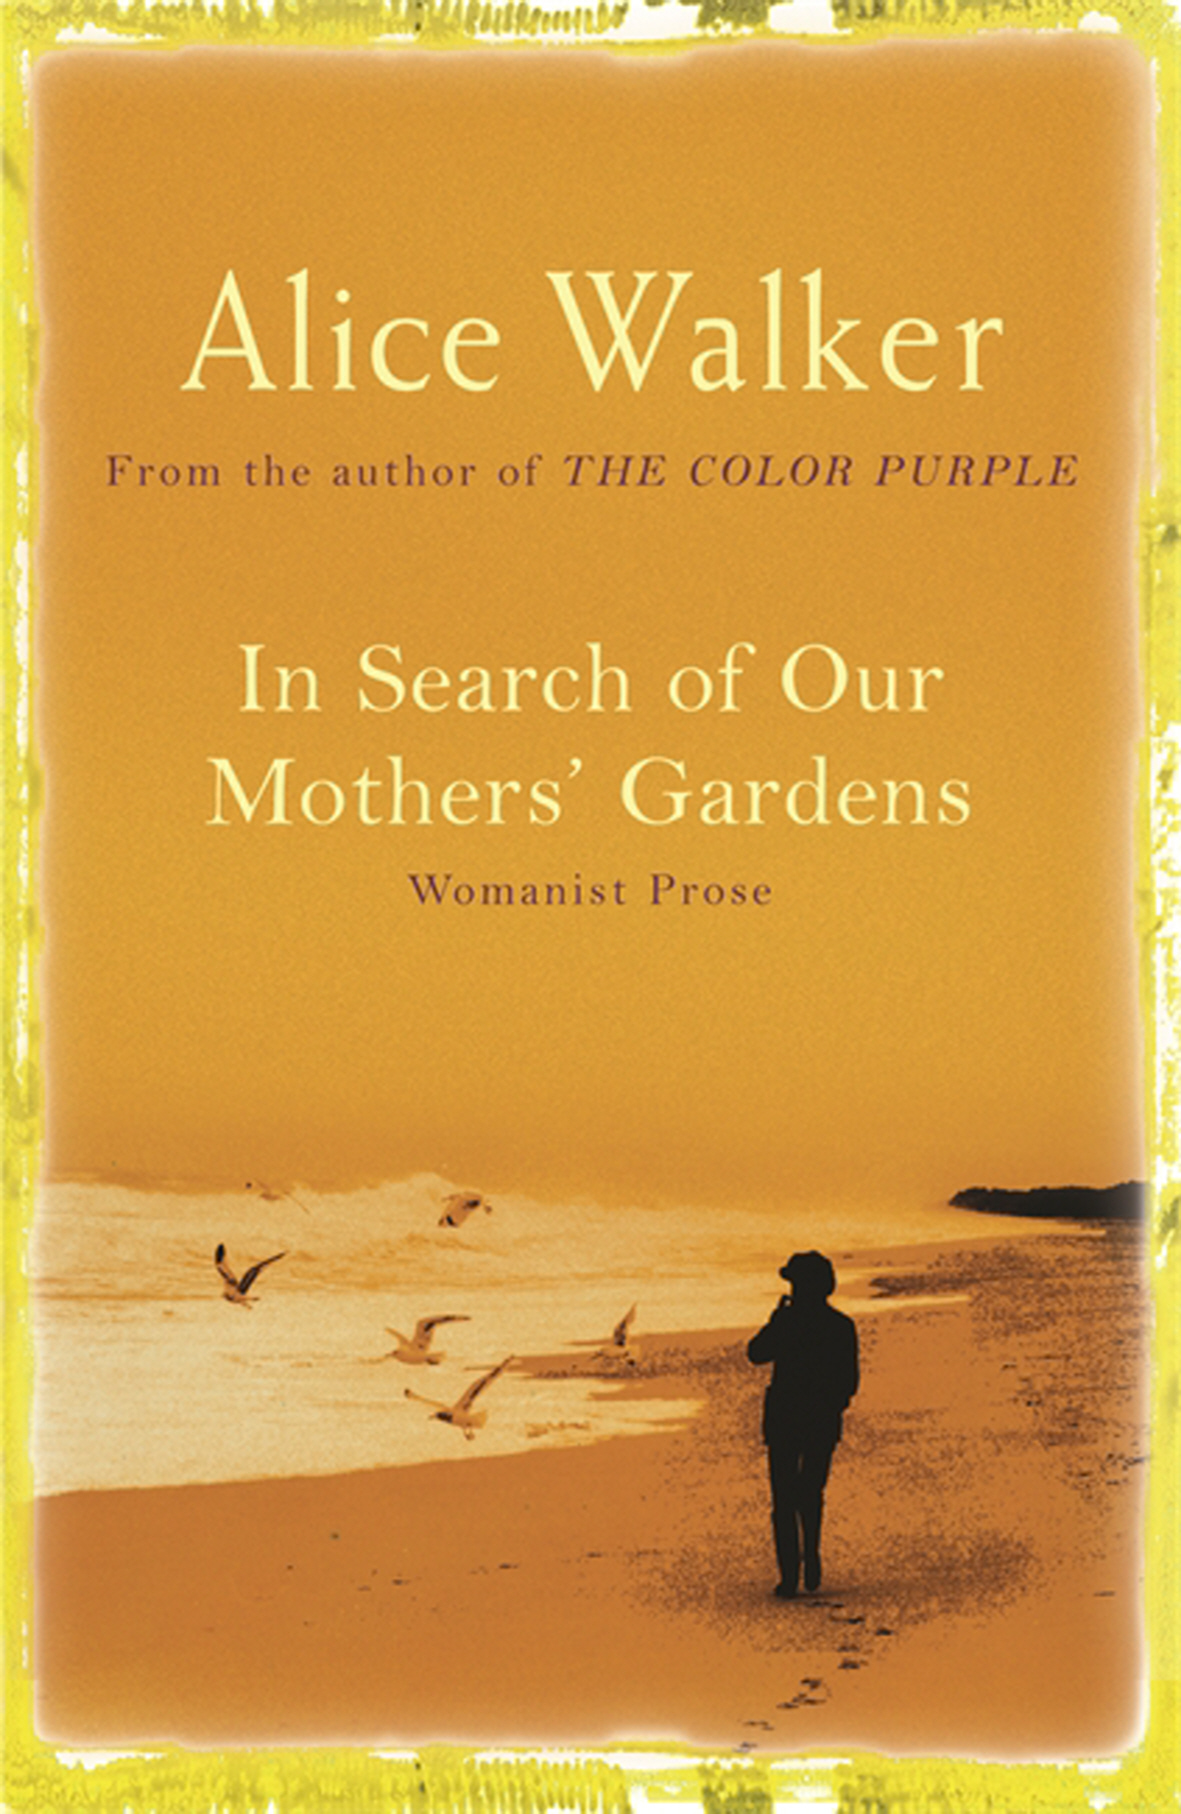 in search of our mothers garden Walker describes jean toomer's exploration of the reconstruction south toomer found women sexually abused and lost, but who he saw to hold power, spirituality and beauty of which they were not aware they were waiting for these unknowns to be made known.